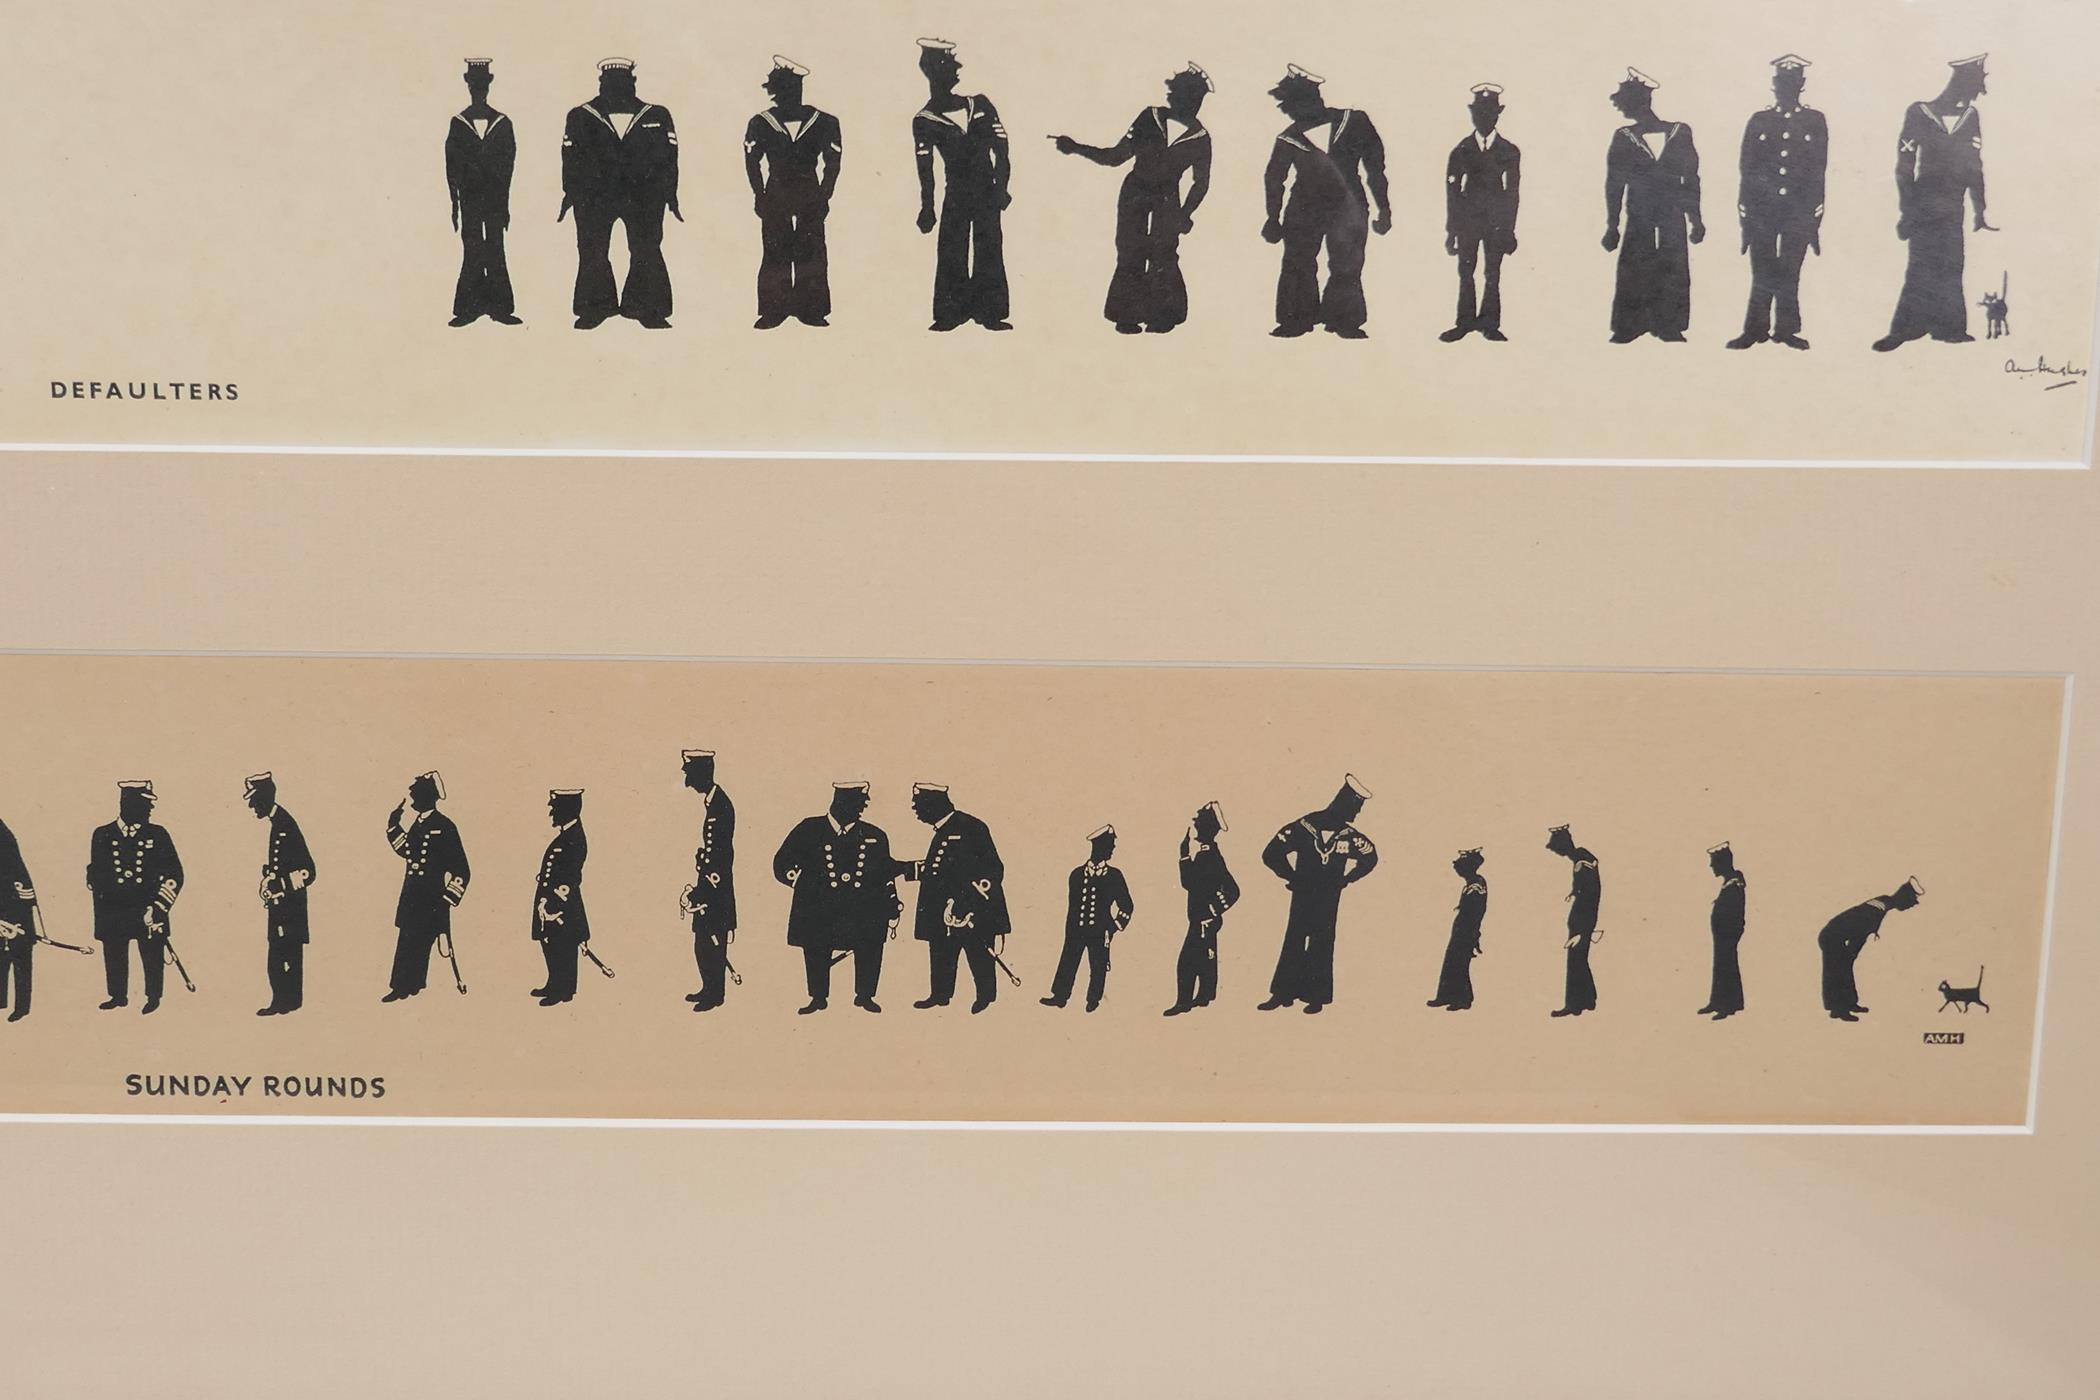 A.M. Hughes, three silhouette prints of naval life, Grog, Defaulters and Sunday Rounds, mounted in a - Image 8 of 9